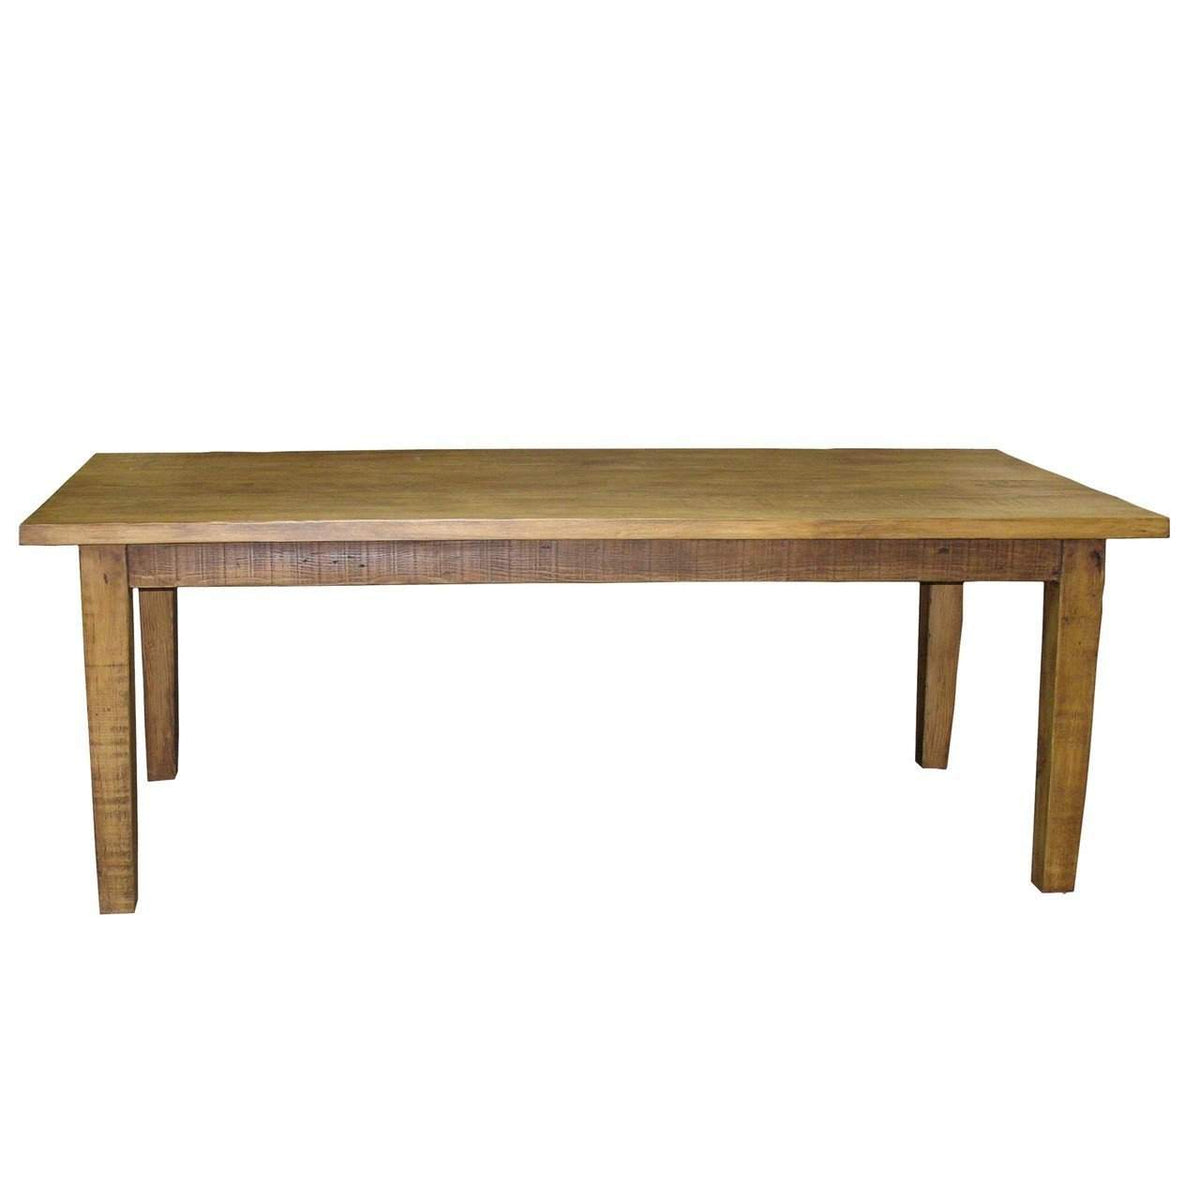 "CFC Furniture Reclaimed Lumber Farm Dining Table, 84""-CFC Furniture-Blue Hand Home"